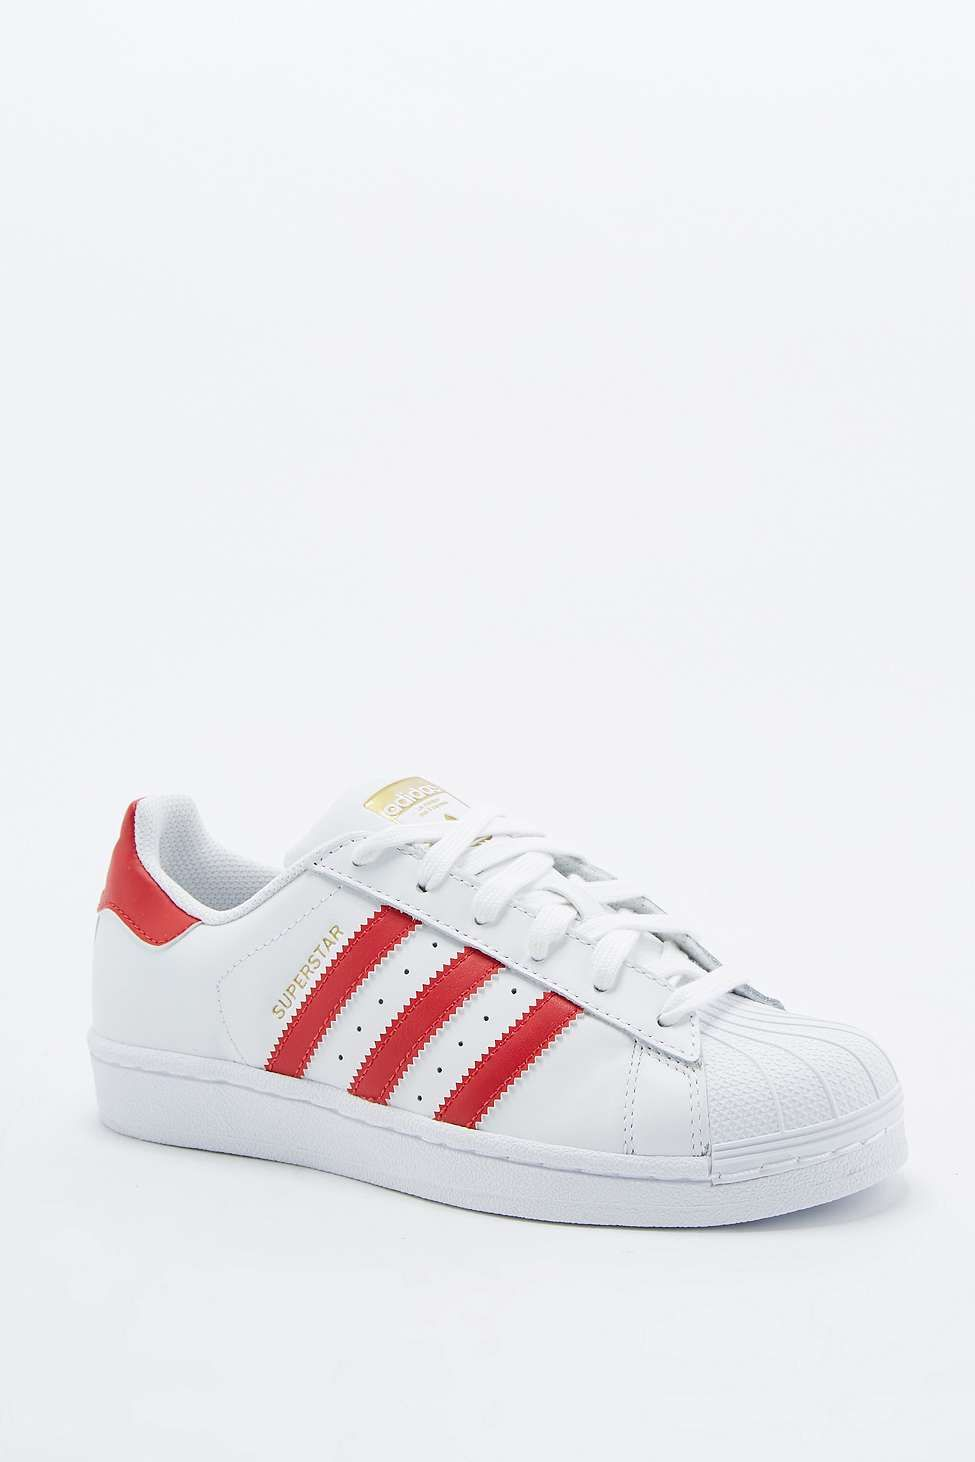 info pour 6d682 2c9b9 adidas Originals Superstar 80's Red and White Trainers ...